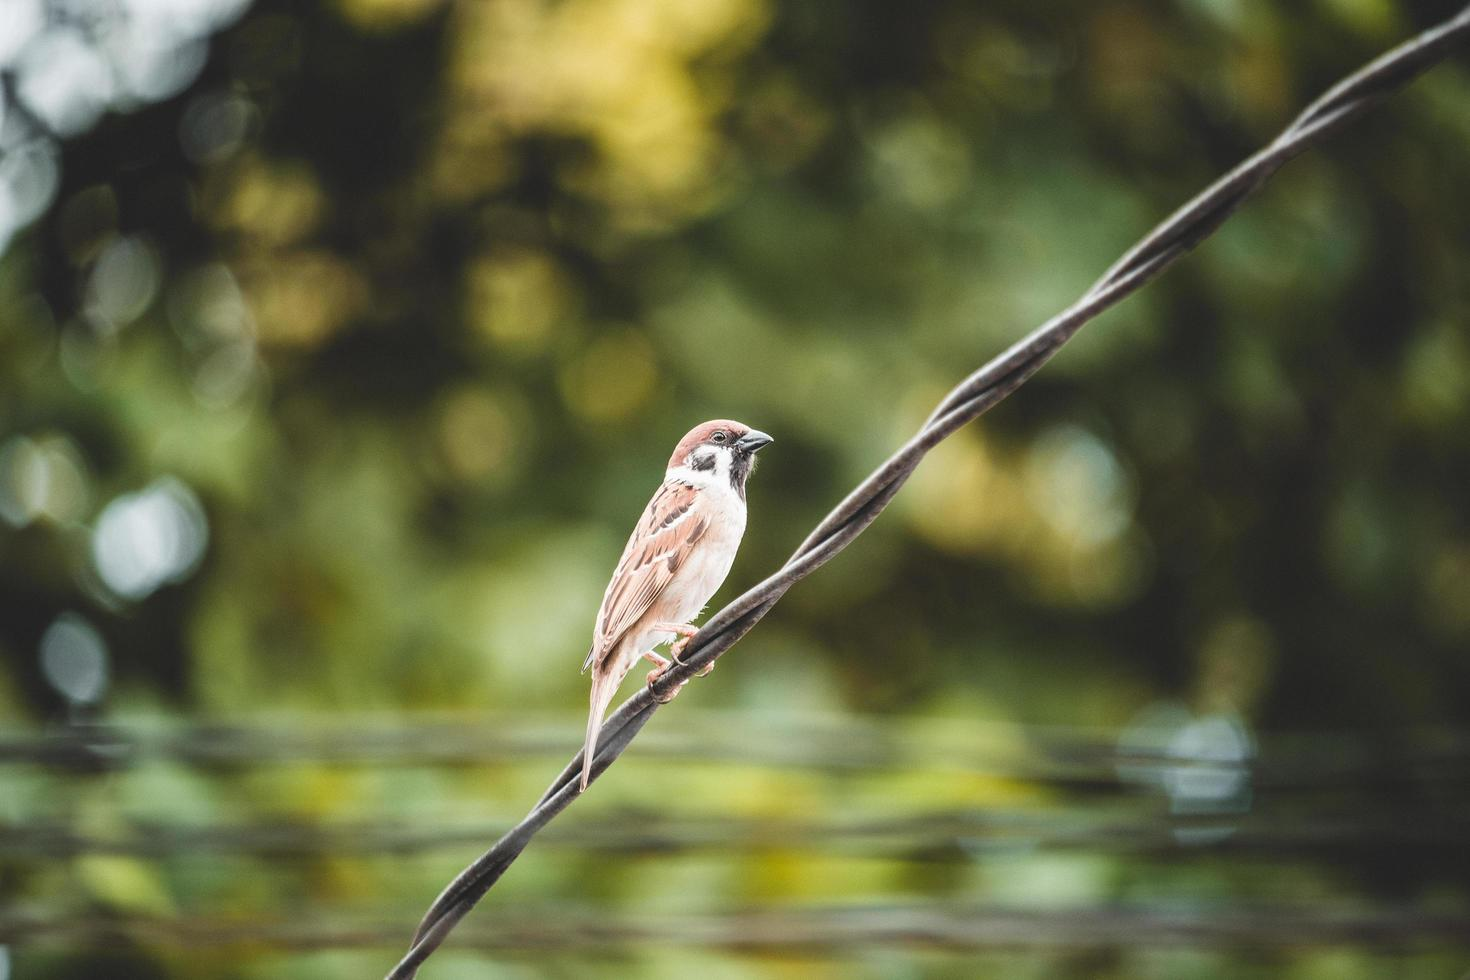 Bird perched on wire photo